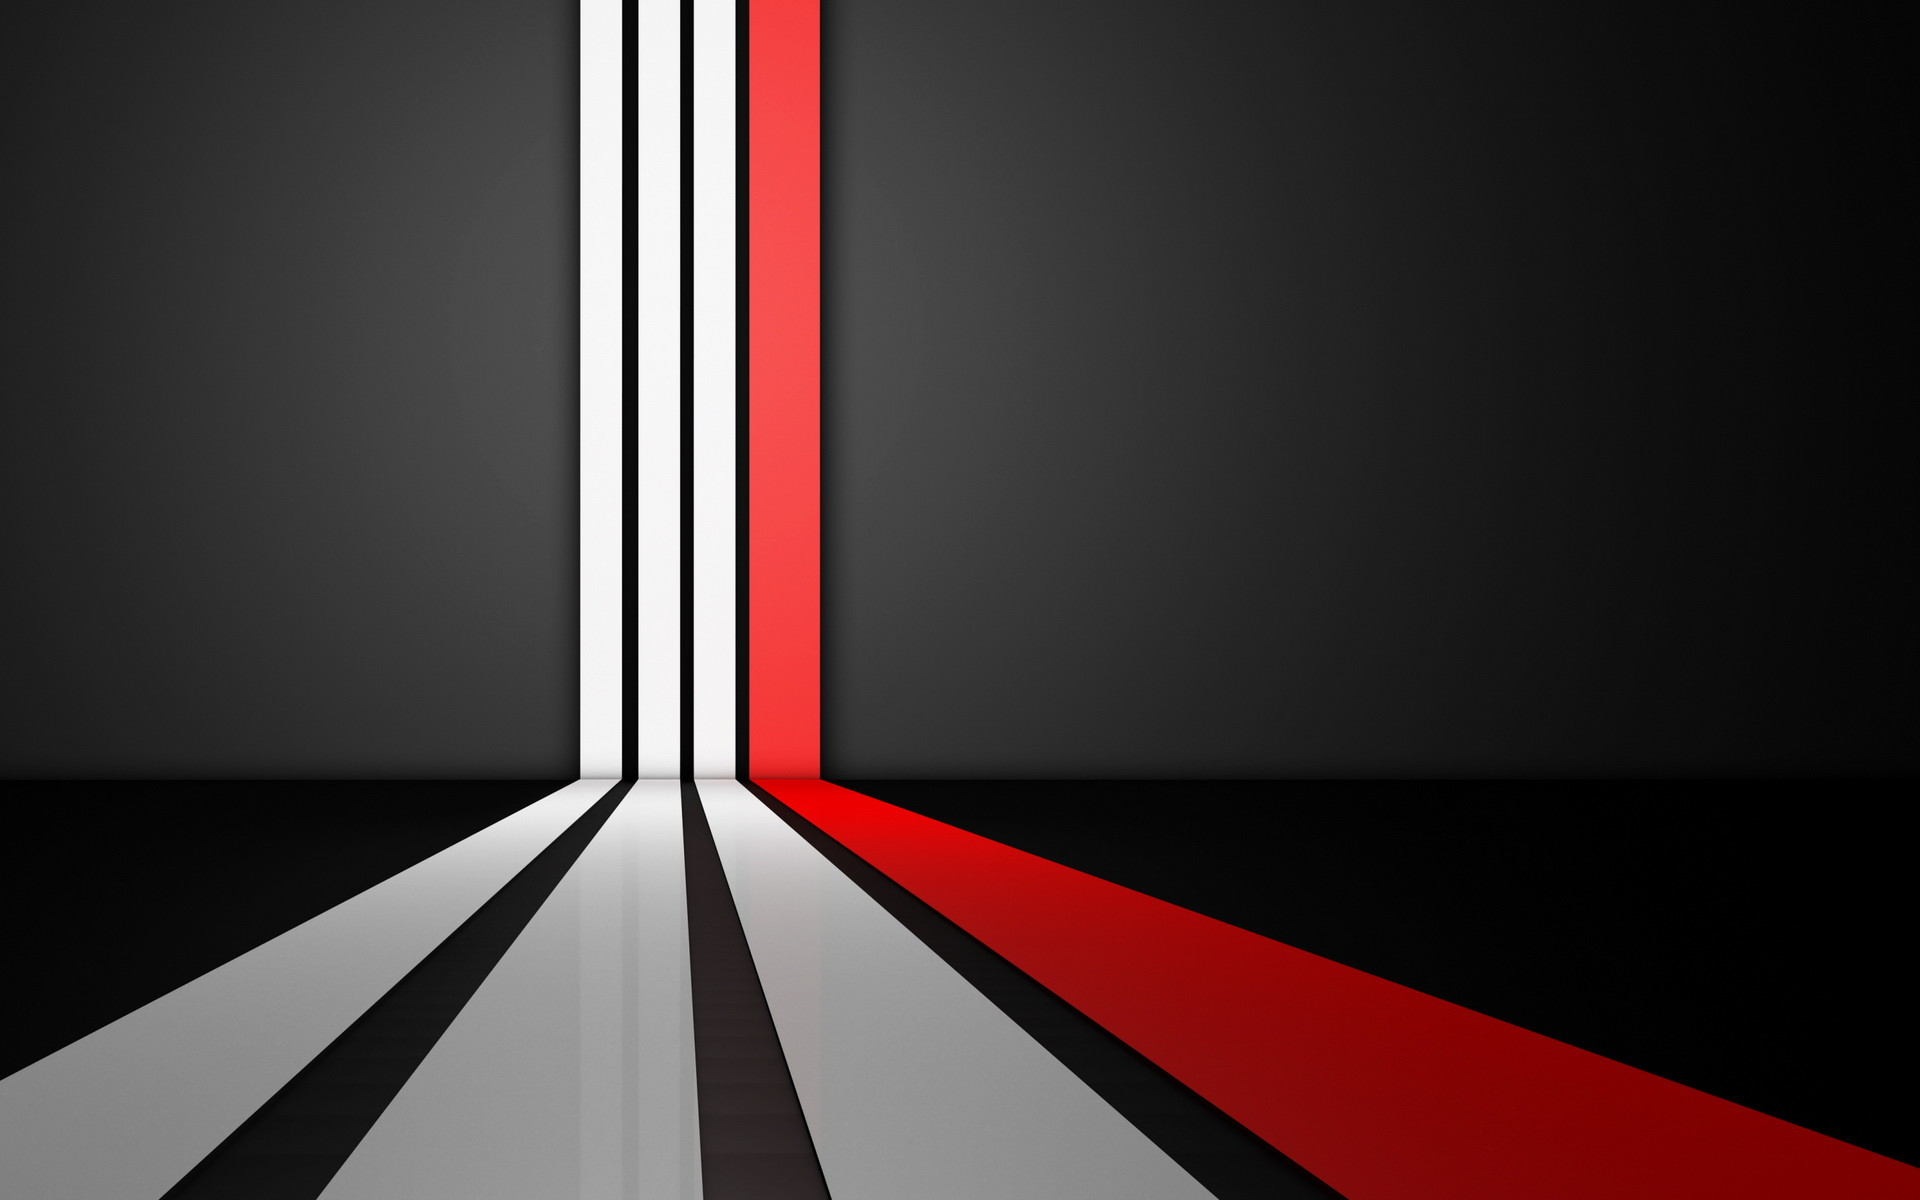 Red White And Black Backgrounds 2 Cool Hd Wallpaper. Red White And Black  Backgrounds 2 Cool Hd Wallpaper